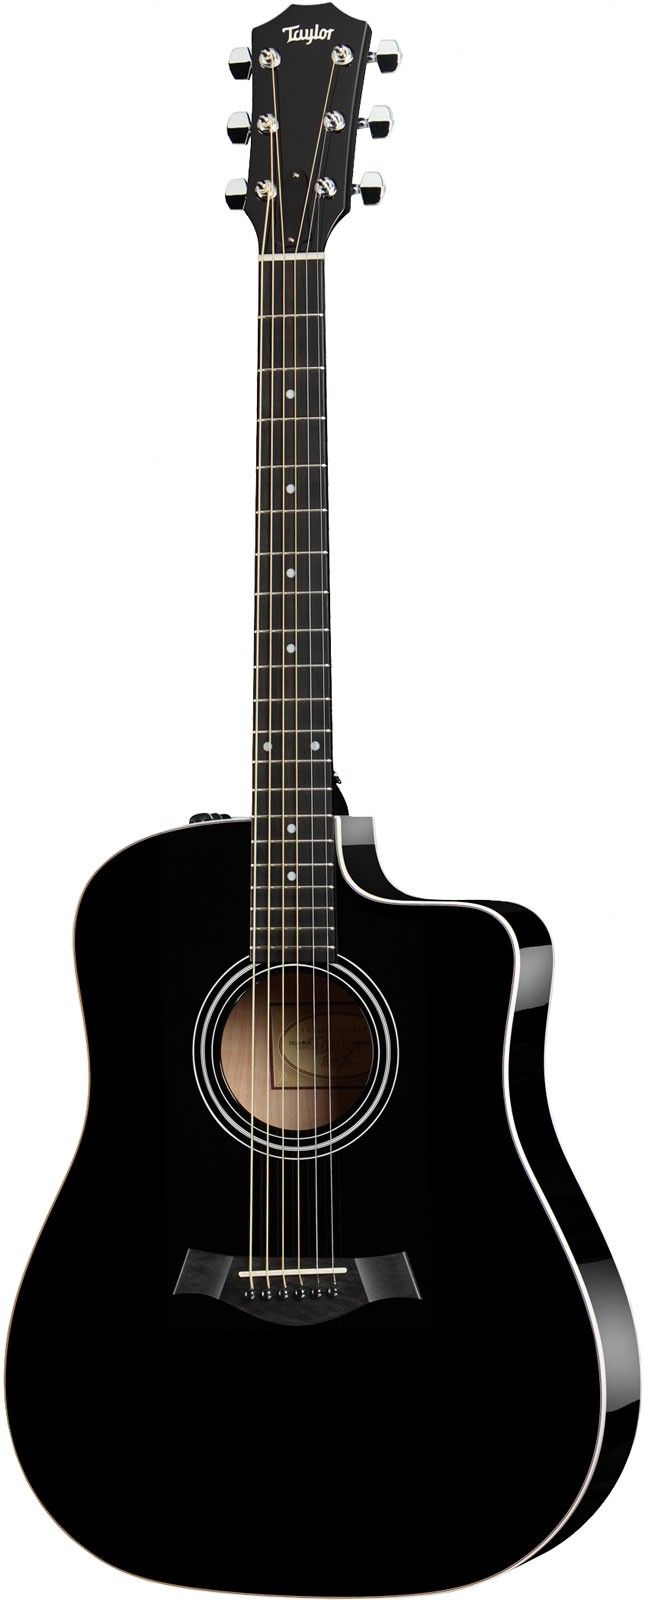 taylor 210ce black cutaway electro acoustic guitar taylor acoustic guitar music things. Black Bedroom Furniture Sets. Home Design Ideas